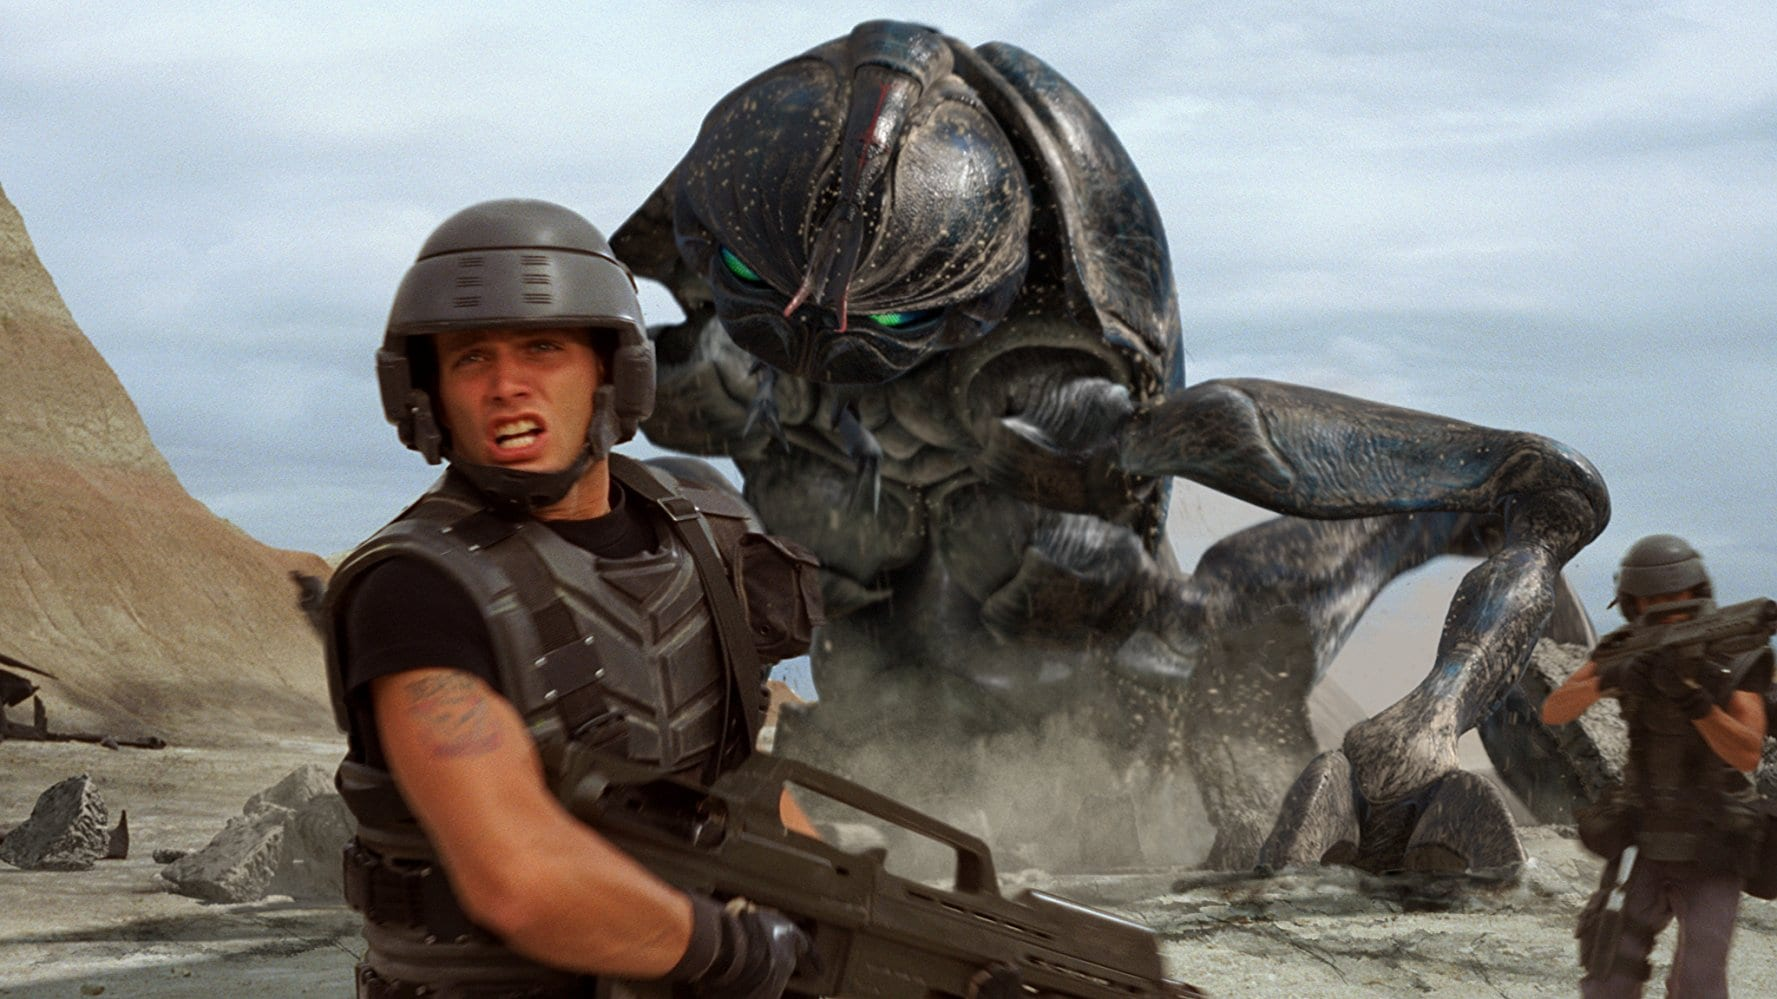 starship troopers 4k hdr blu-ray